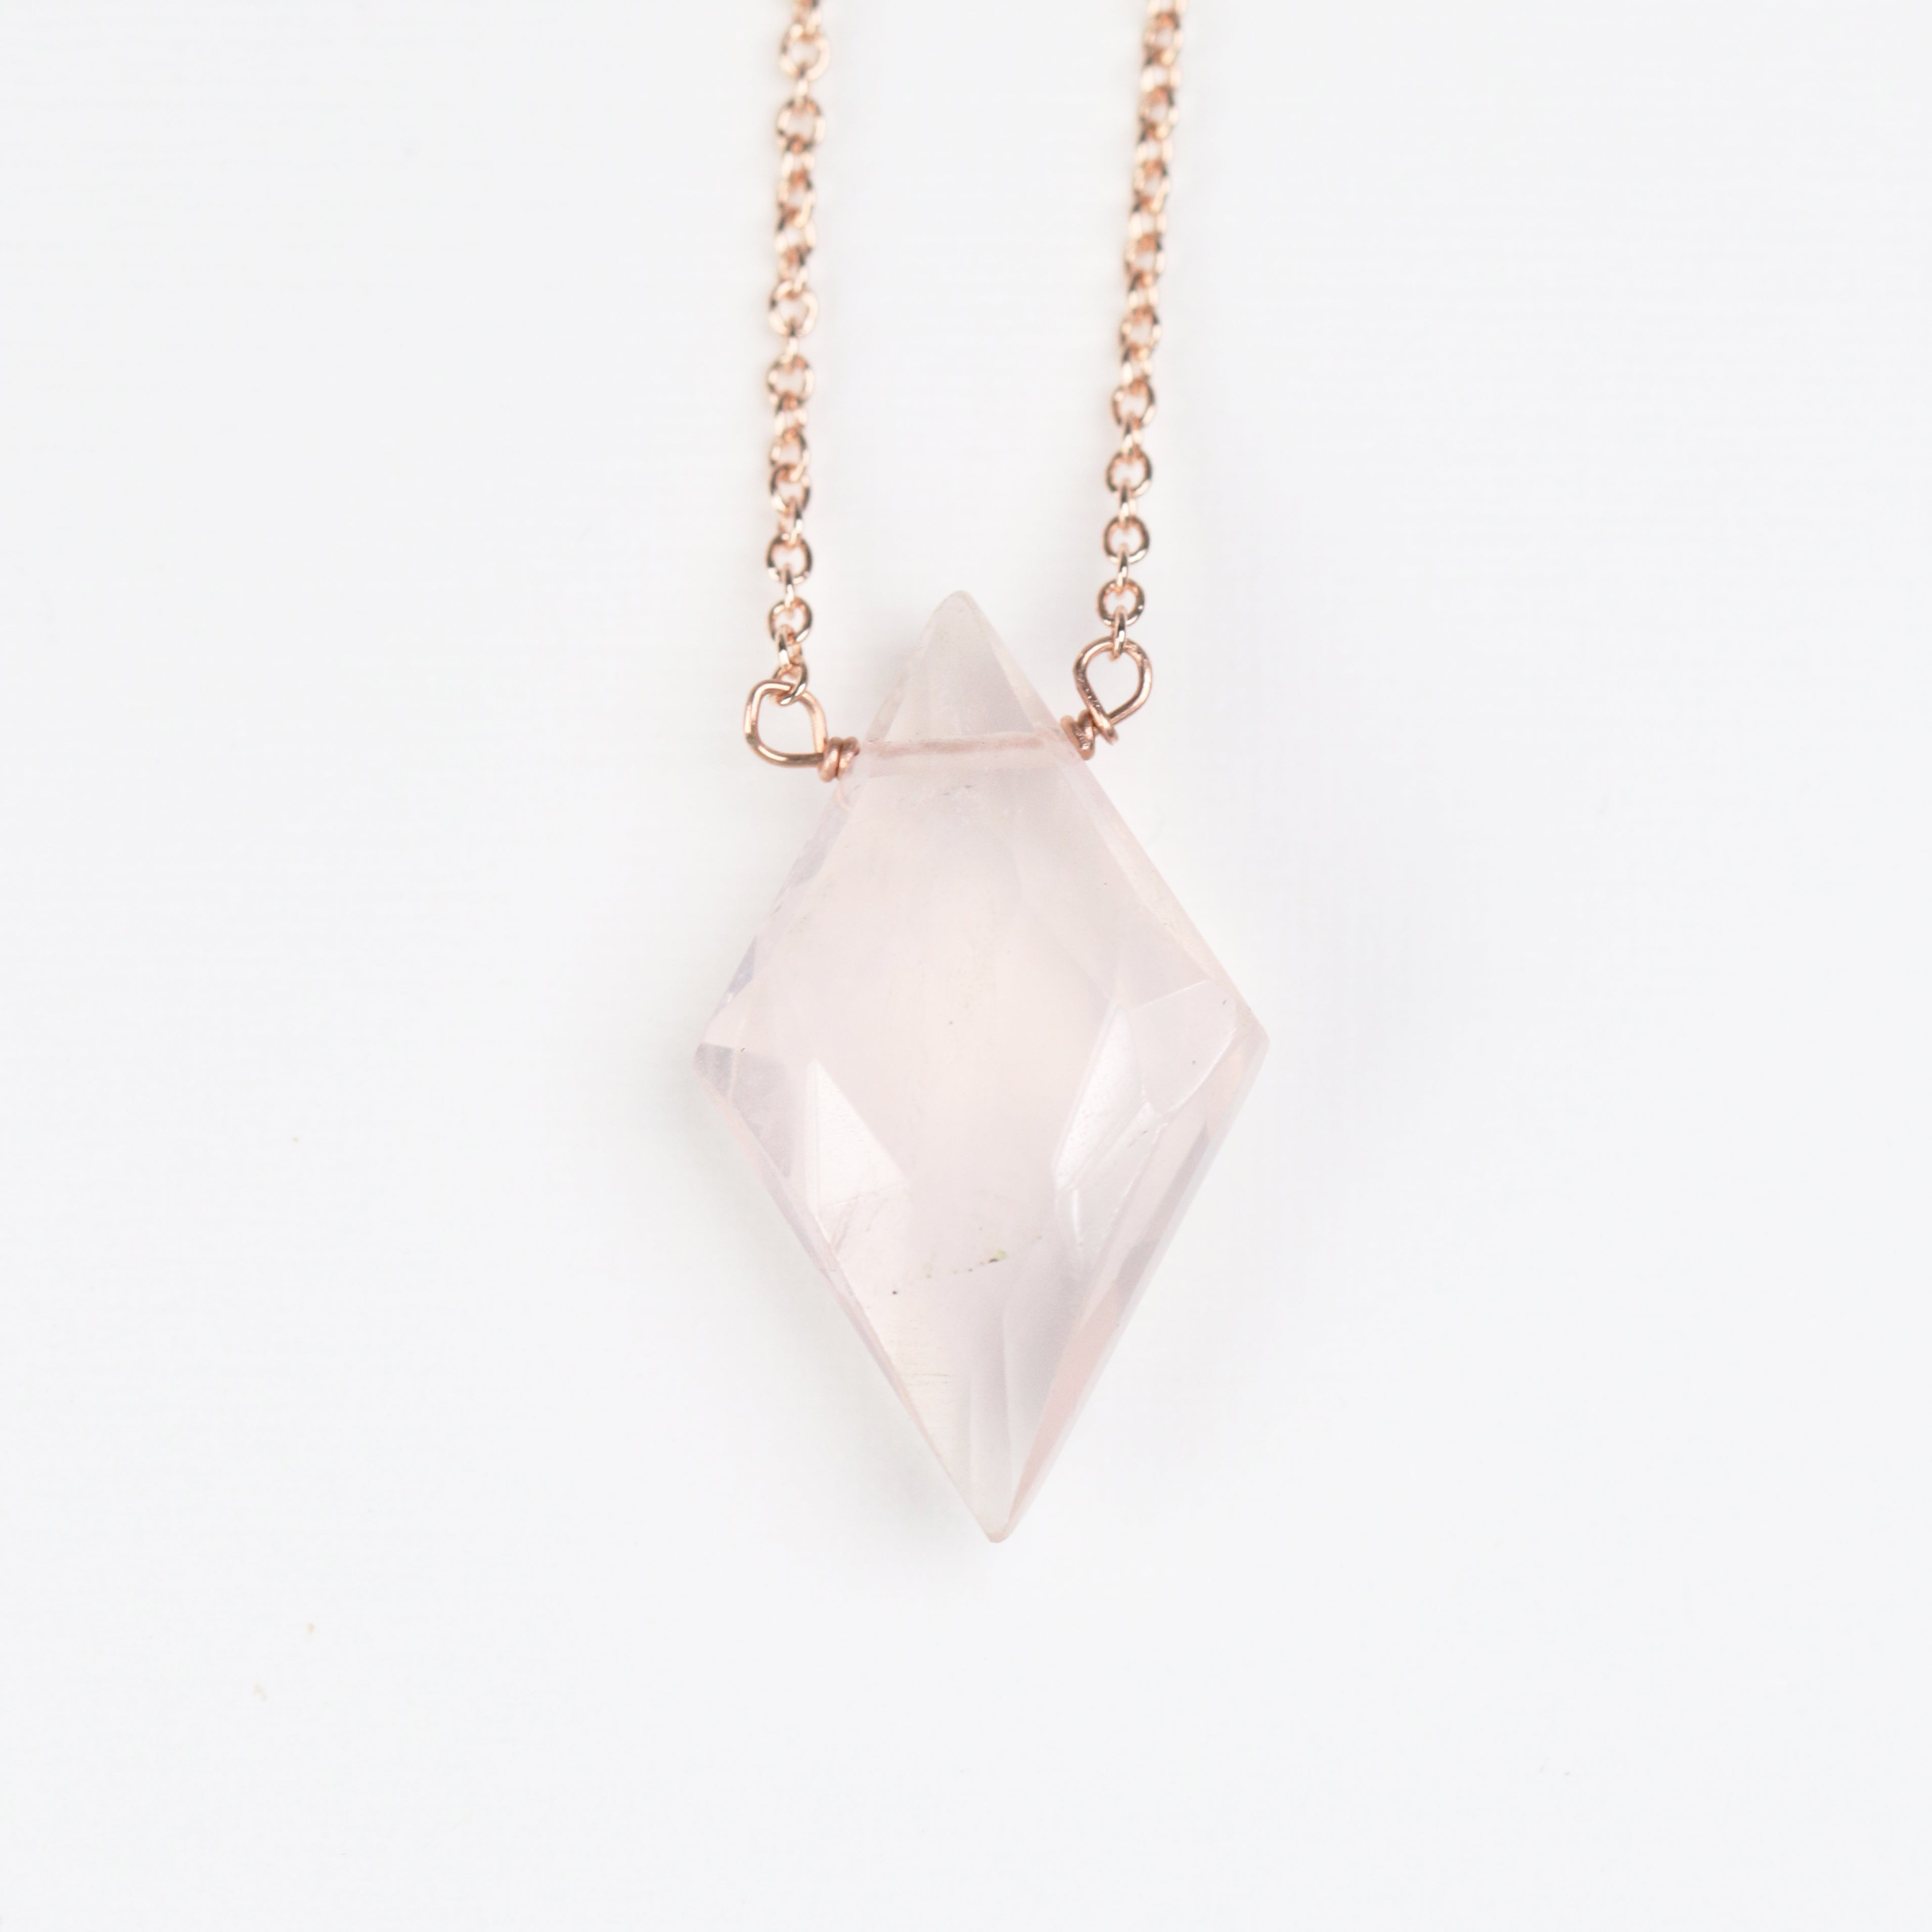 Rose Quartz Pendant Necklace with 14k Rose Gold Fill or Sterling Silver Chain - Midwinter Co. Alternative Bridal Rings and Modern Fine Jewelry